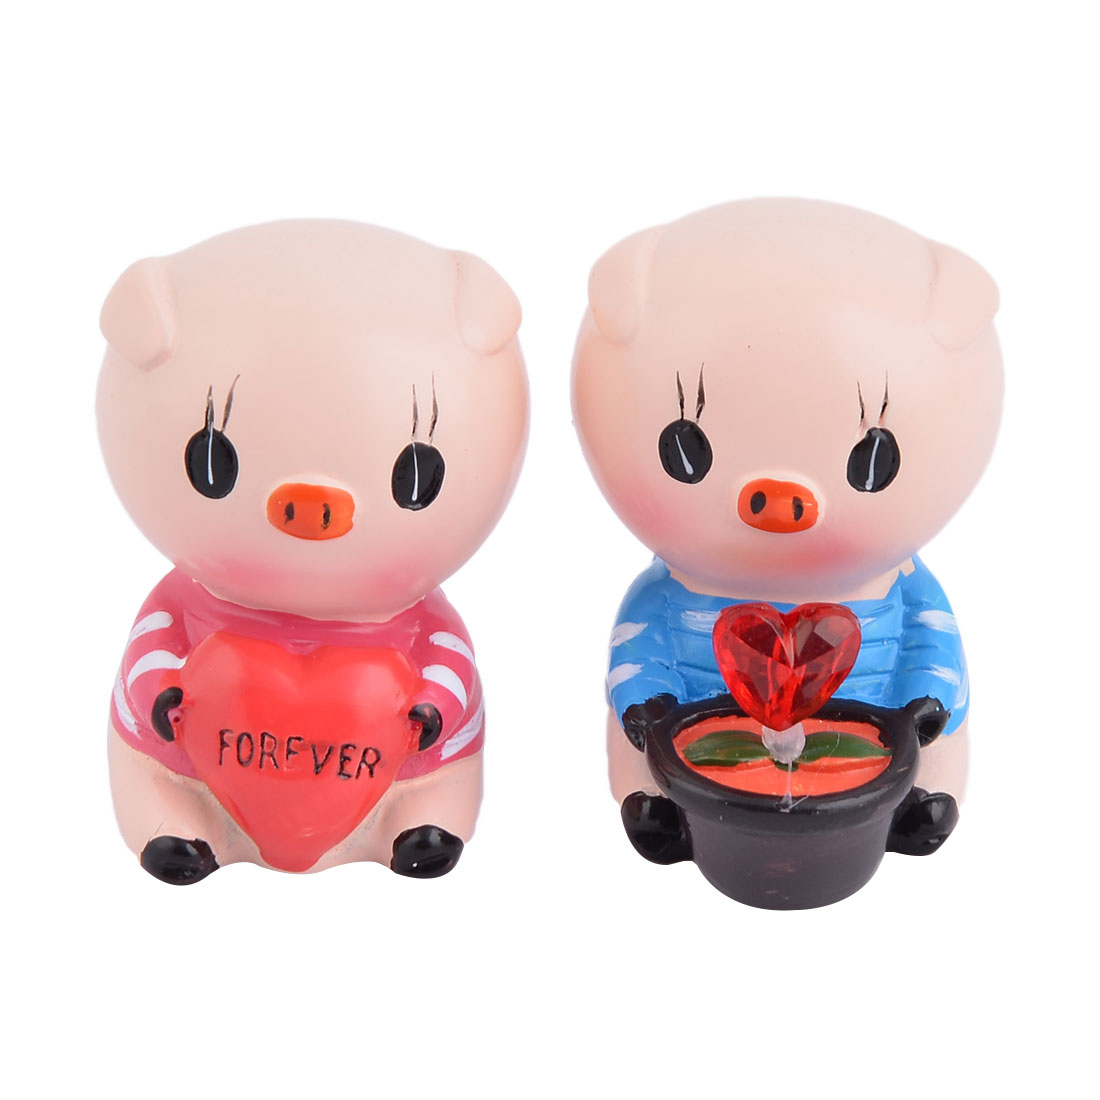 Wedding Birthday Resin Pig Design Craft Gift Table Desktop Ornament Decor 2 in 1